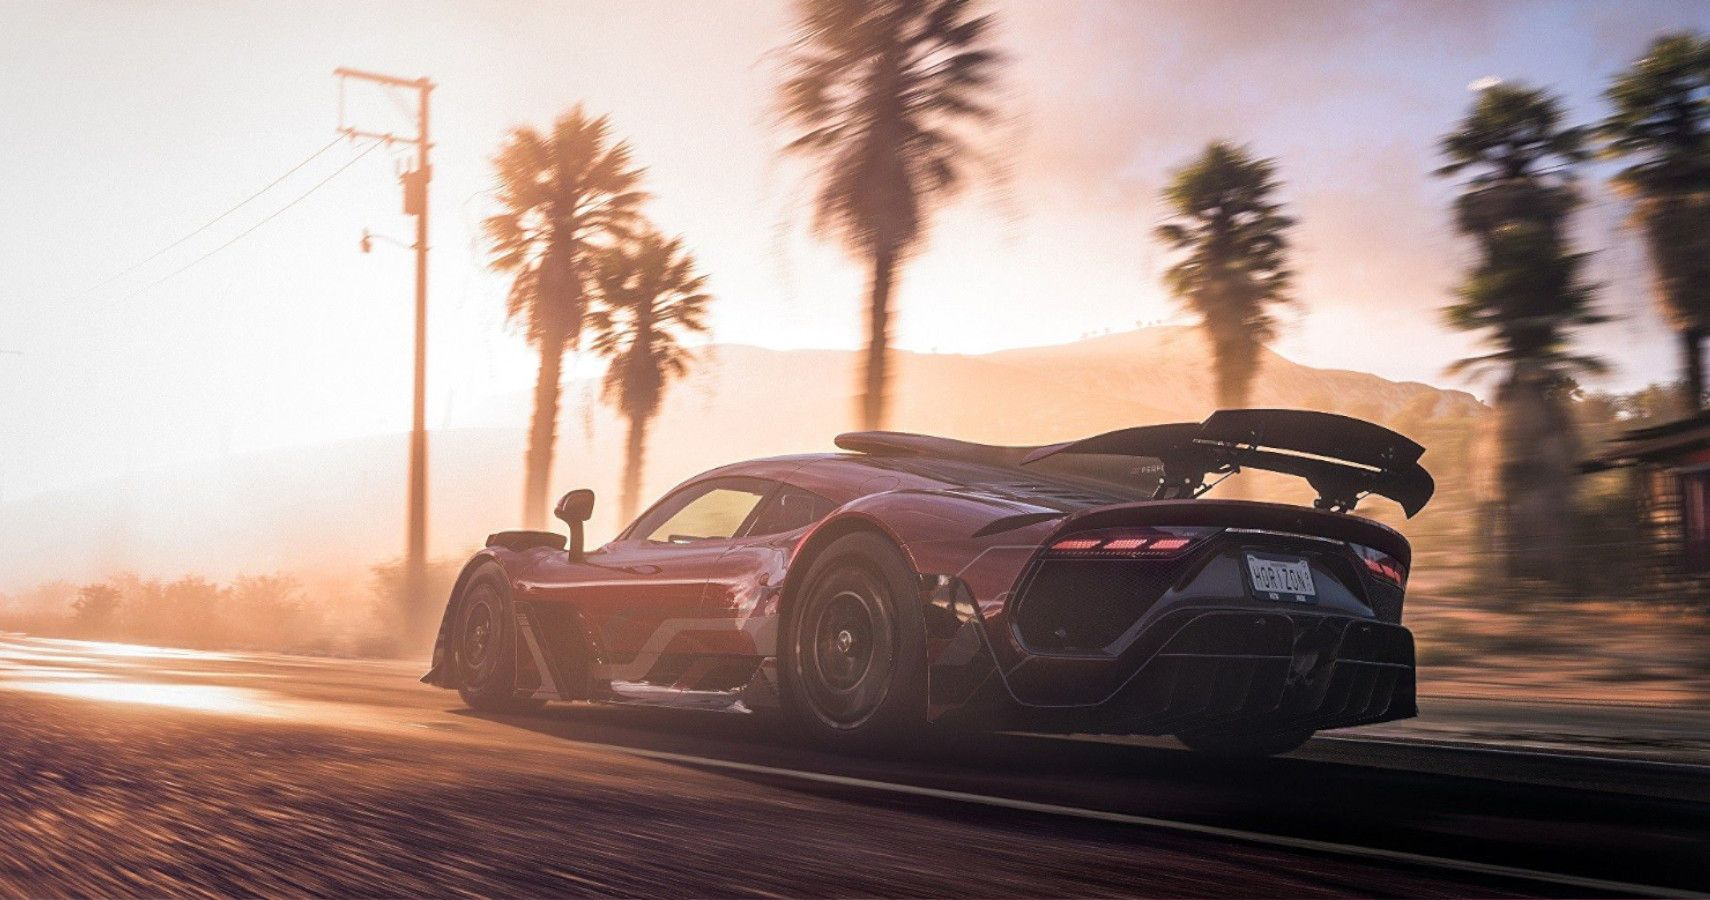 Forza Horizon 5 Would Be Better Off Without Horizon 4's Clumsy Name System